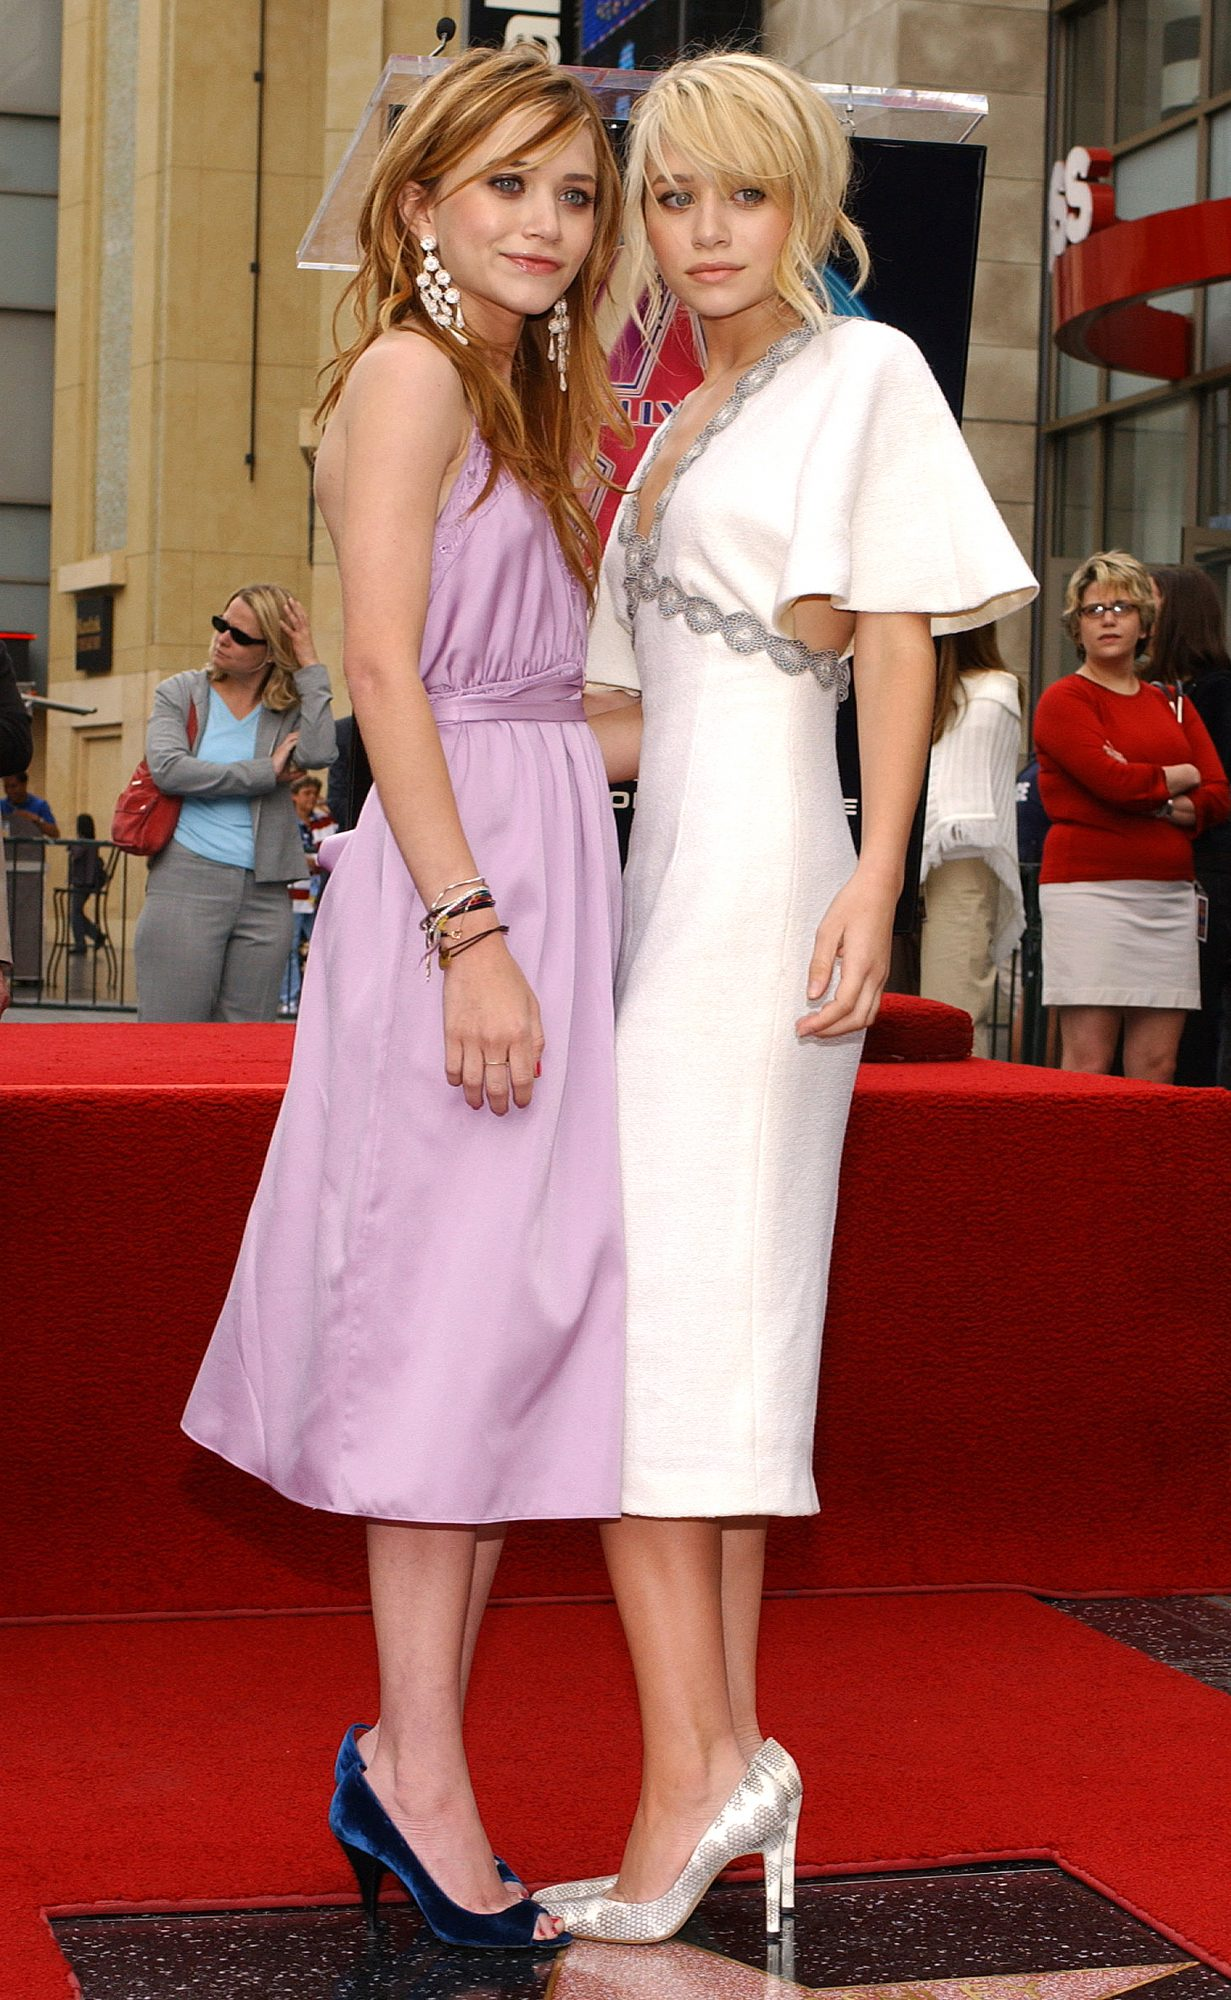 Ashley and Mary-Kate Olsen Get A Star On The Walk of Fame